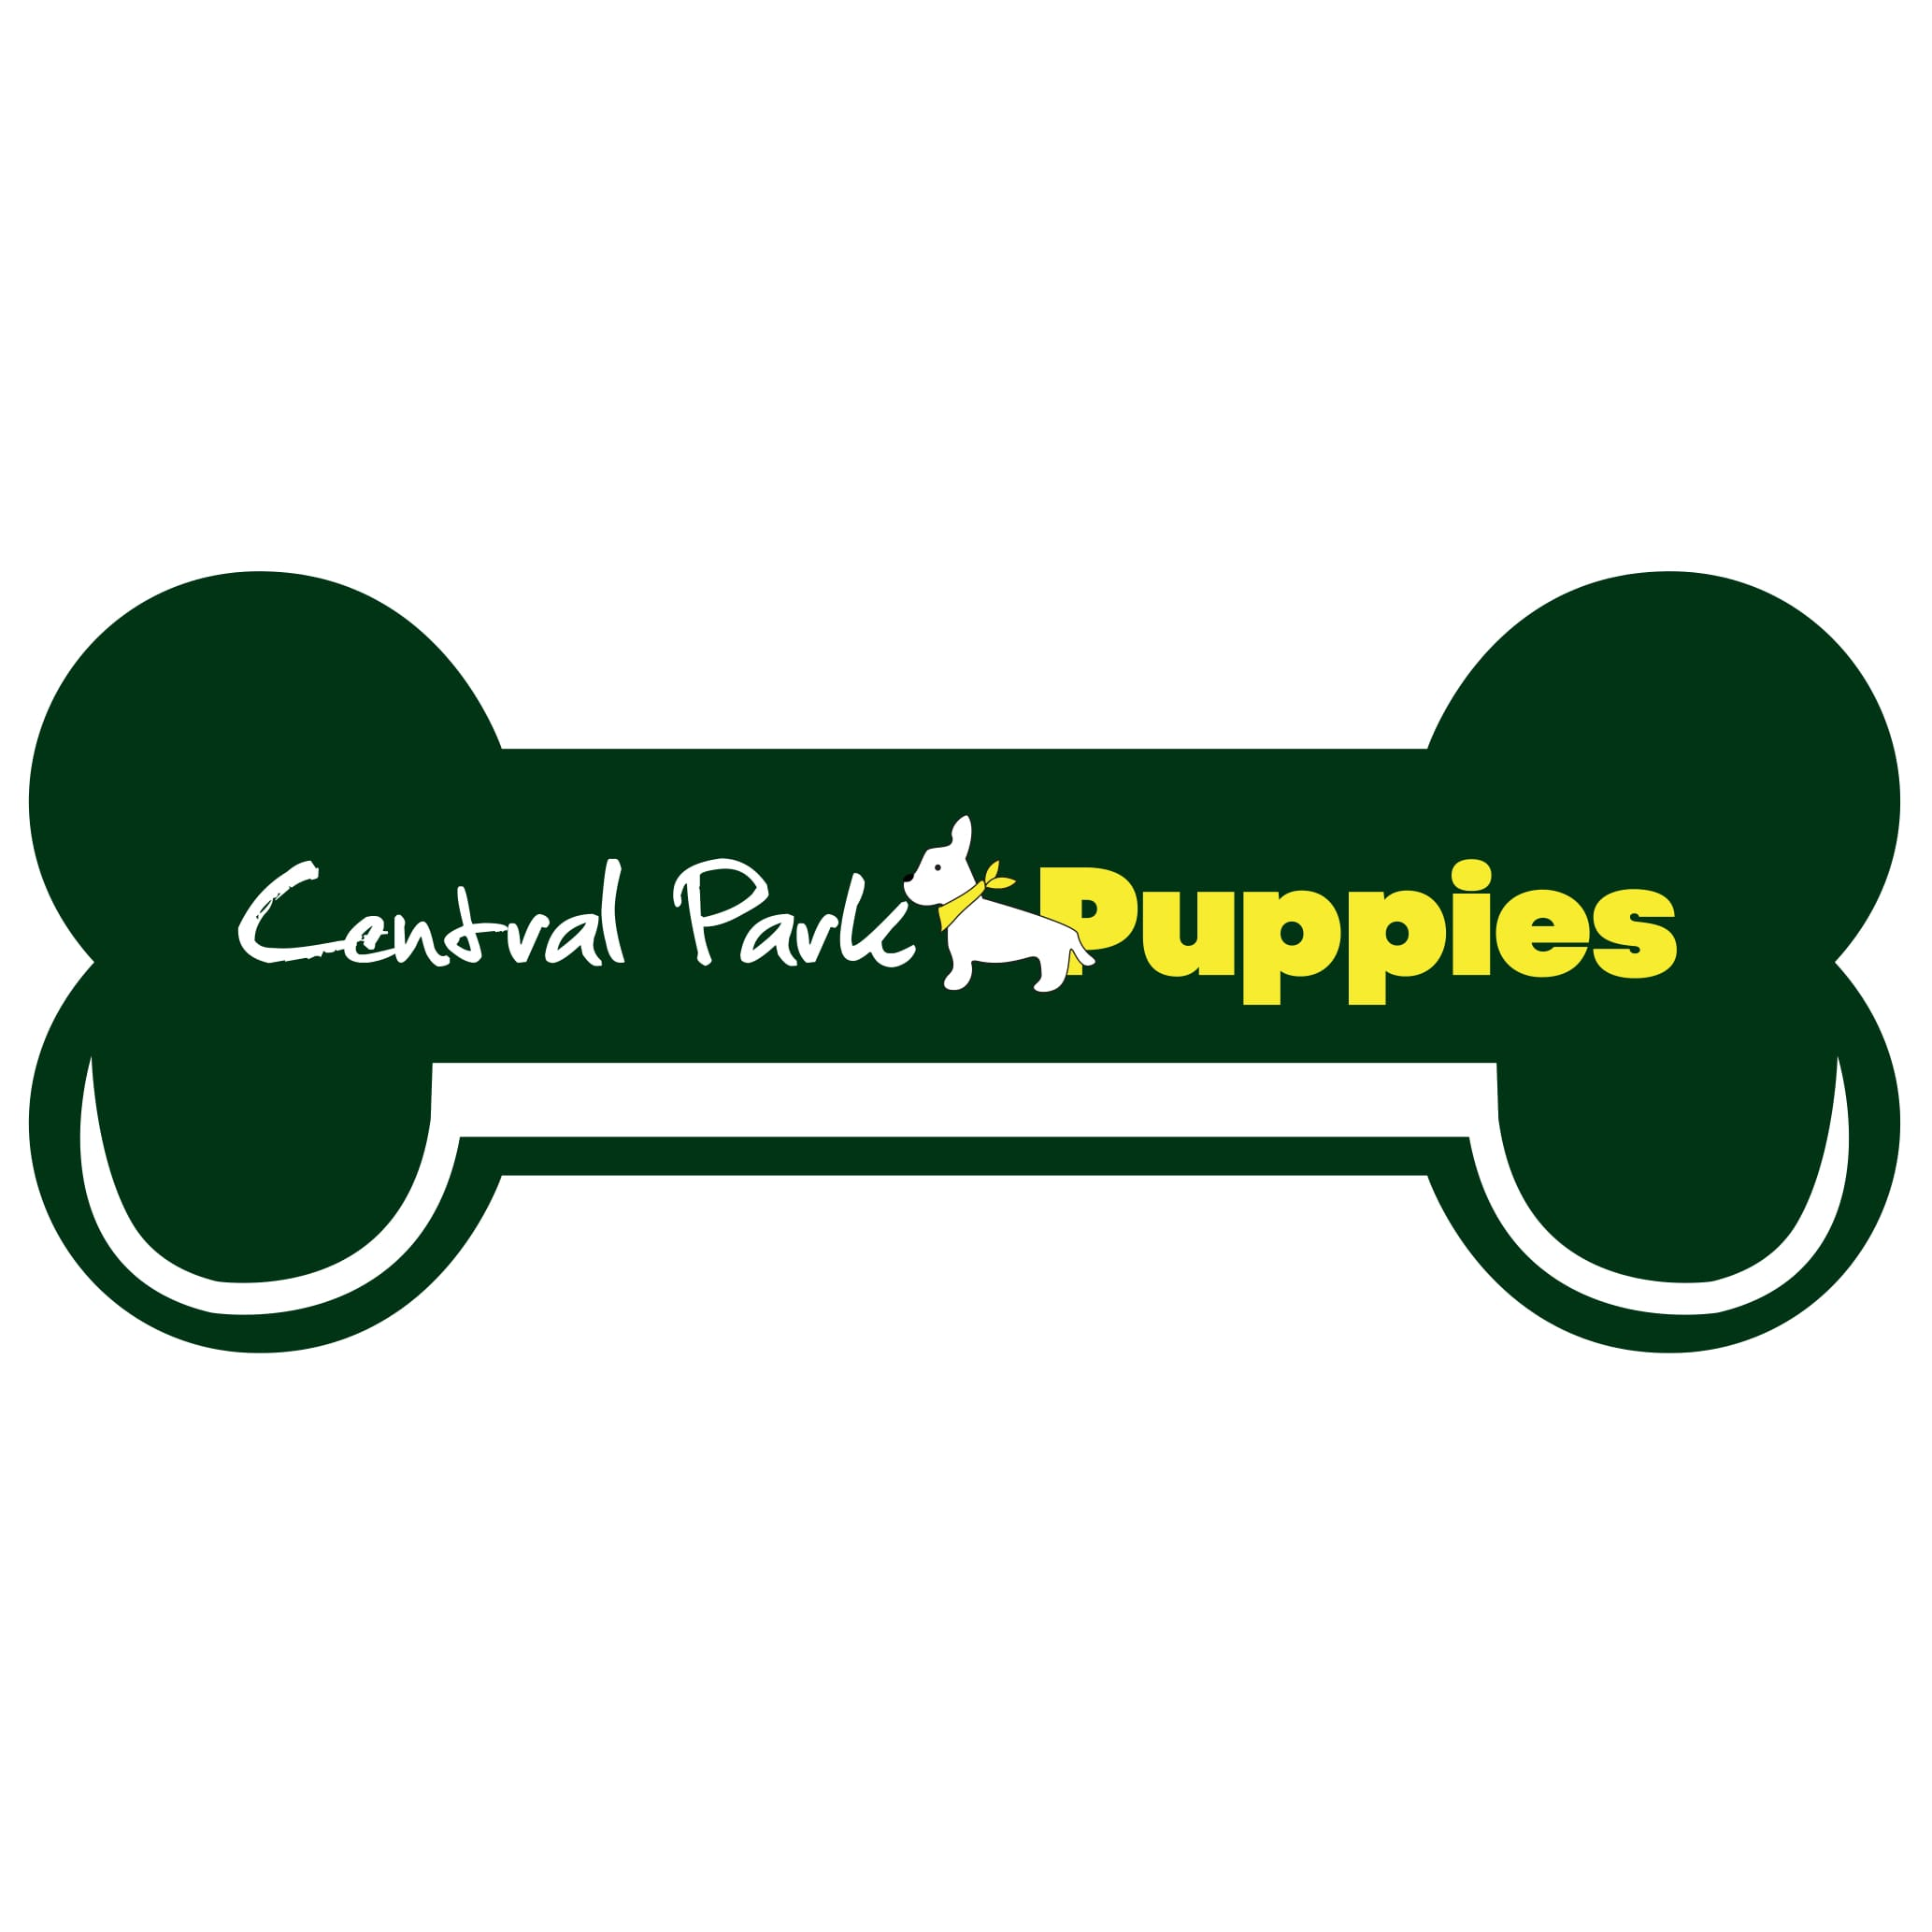 Central Park Puppies